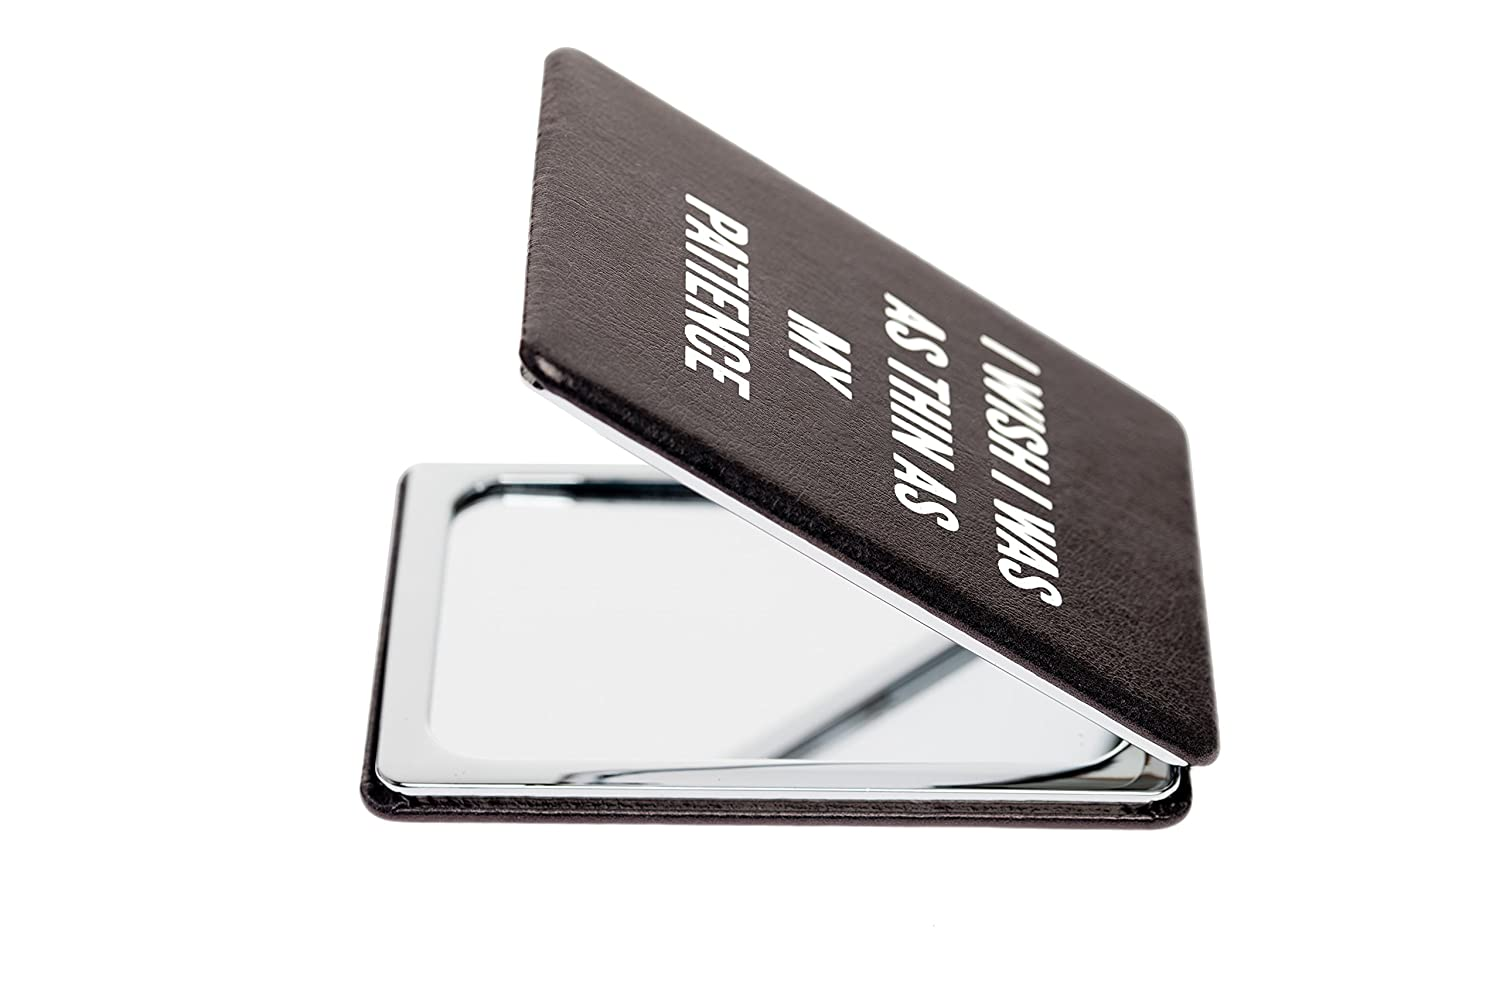 Snark City s Double Sided Compact Mirror I WISH I WAS AS THIN AS MY PATIENCE 2xMagnification Standard Mirror, Pocket-Size, Perfect for Purse and Travel Sarcastic, Funny and a bit Sassy